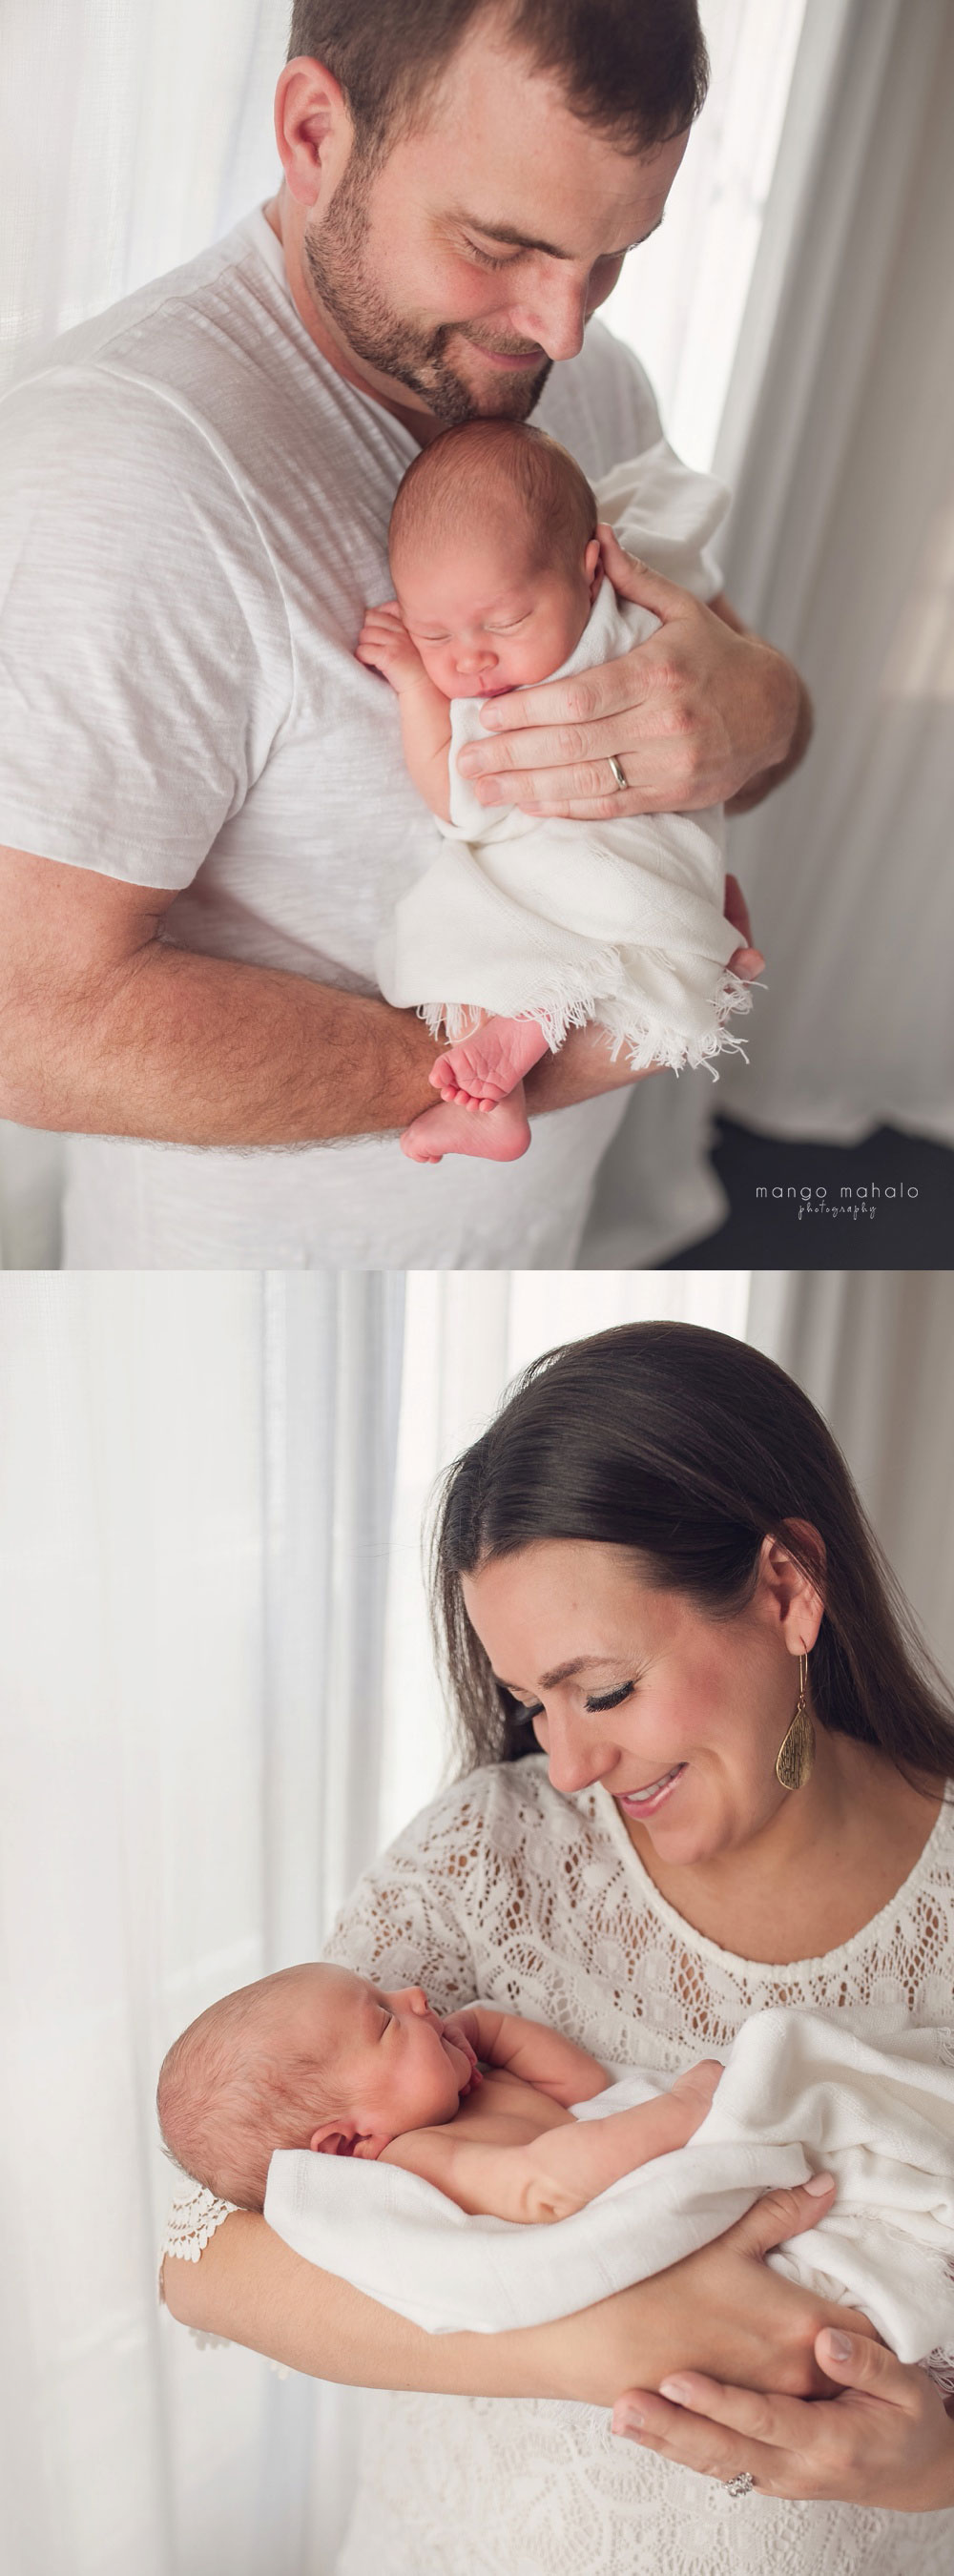 Knoxville Newborn Photographer | Mango Mahalo Photography by Michelle Anderson